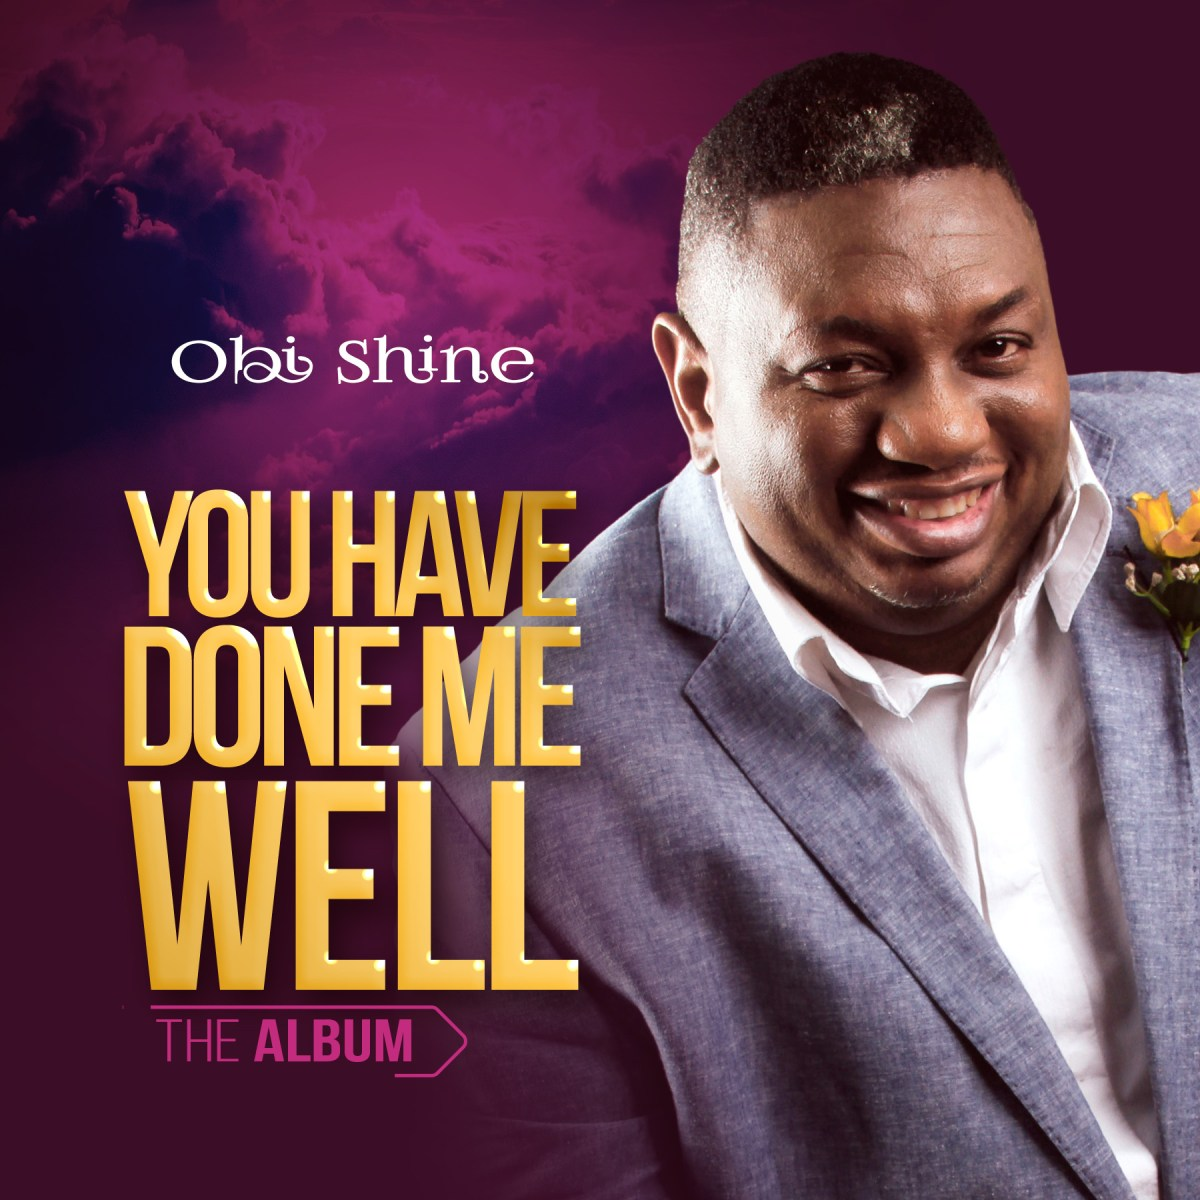 Trending Incredible Album: Obi Shine Premiere Abulm - 'You Have Done Me Well' On Digital Distribution Platforms